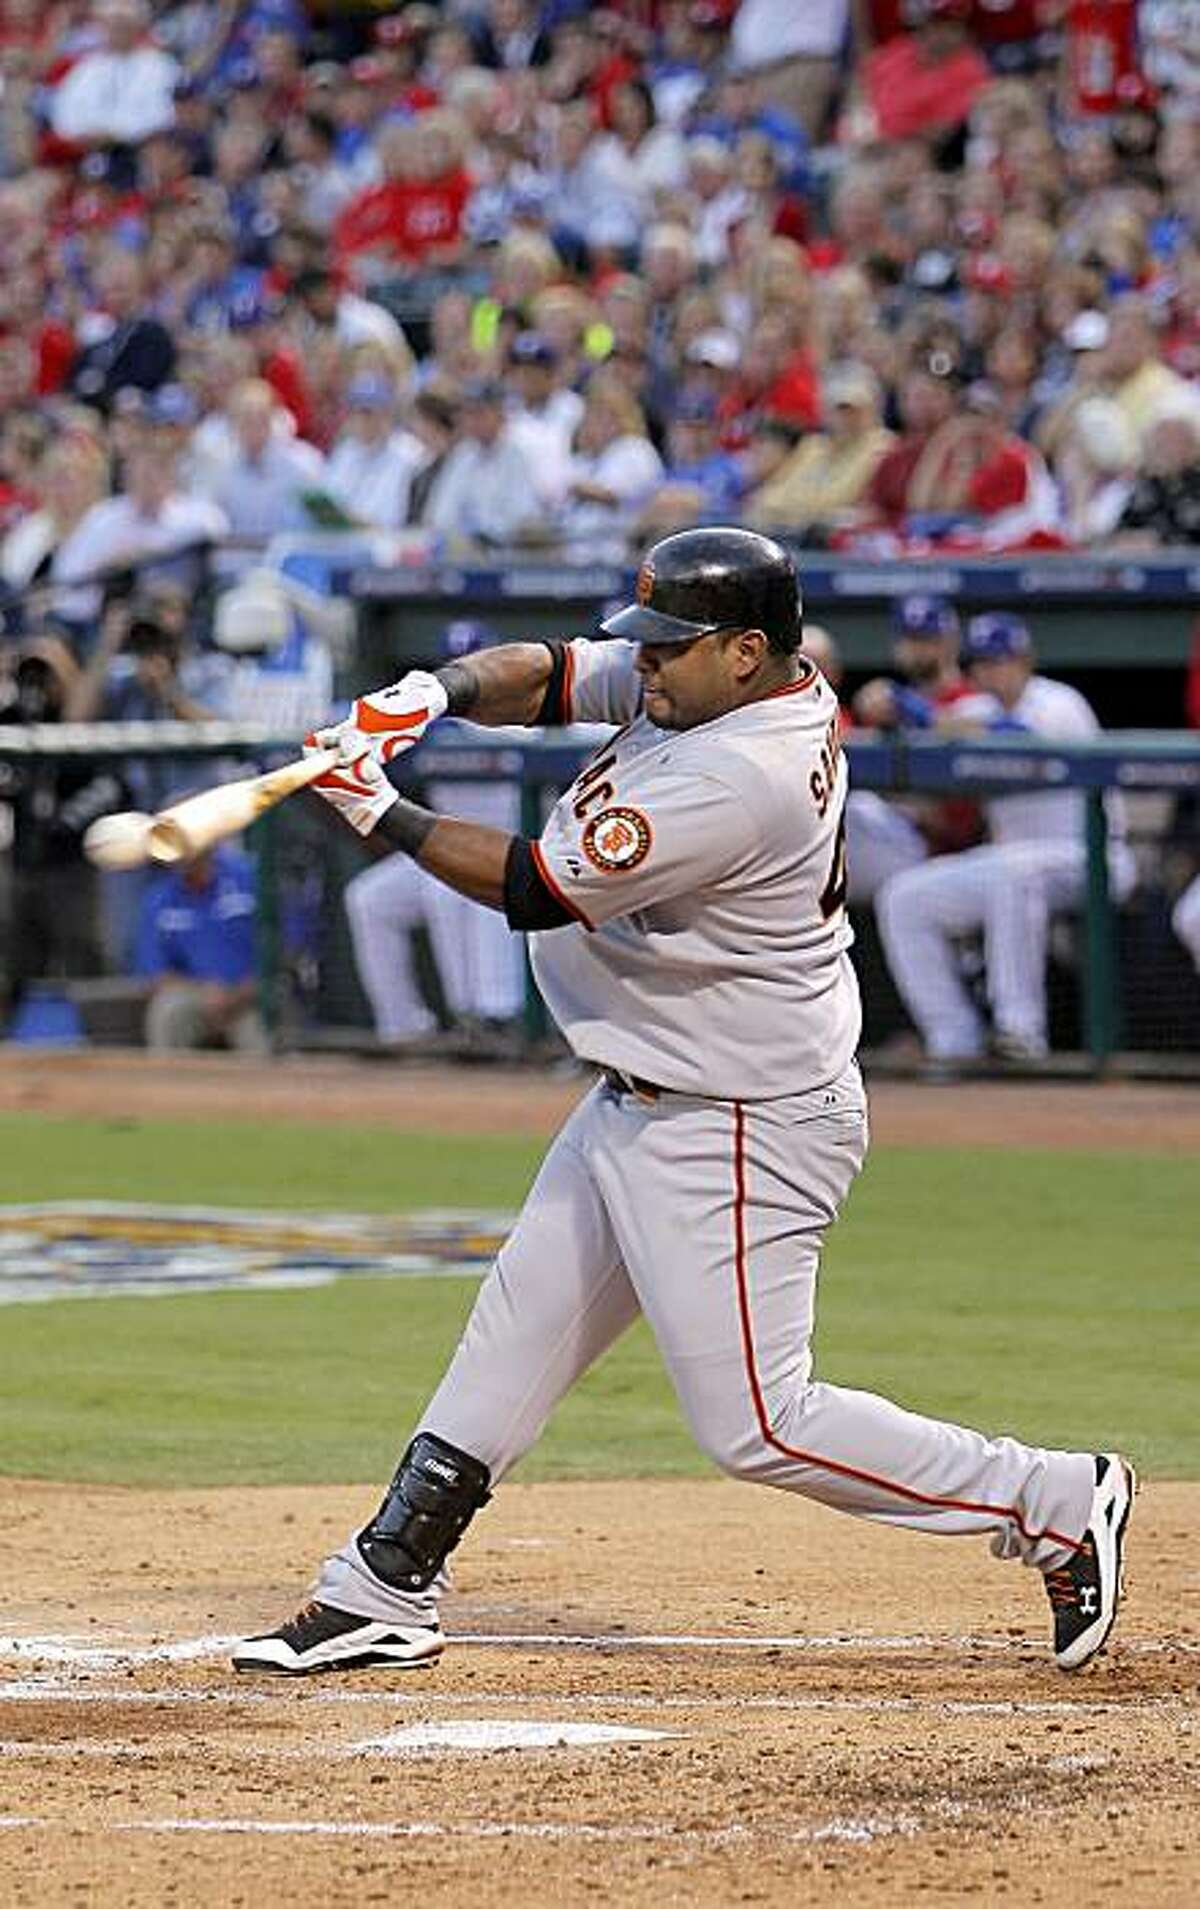 Giants Pablo Sandoval hits into a double play in the second inning, as the San Francisco Giants fall in game 3 by a score of 4-2 to the Texas Rangers, of the 2010 World Series on Saturday Oct. 30, 2010 in Arlington, Tx.